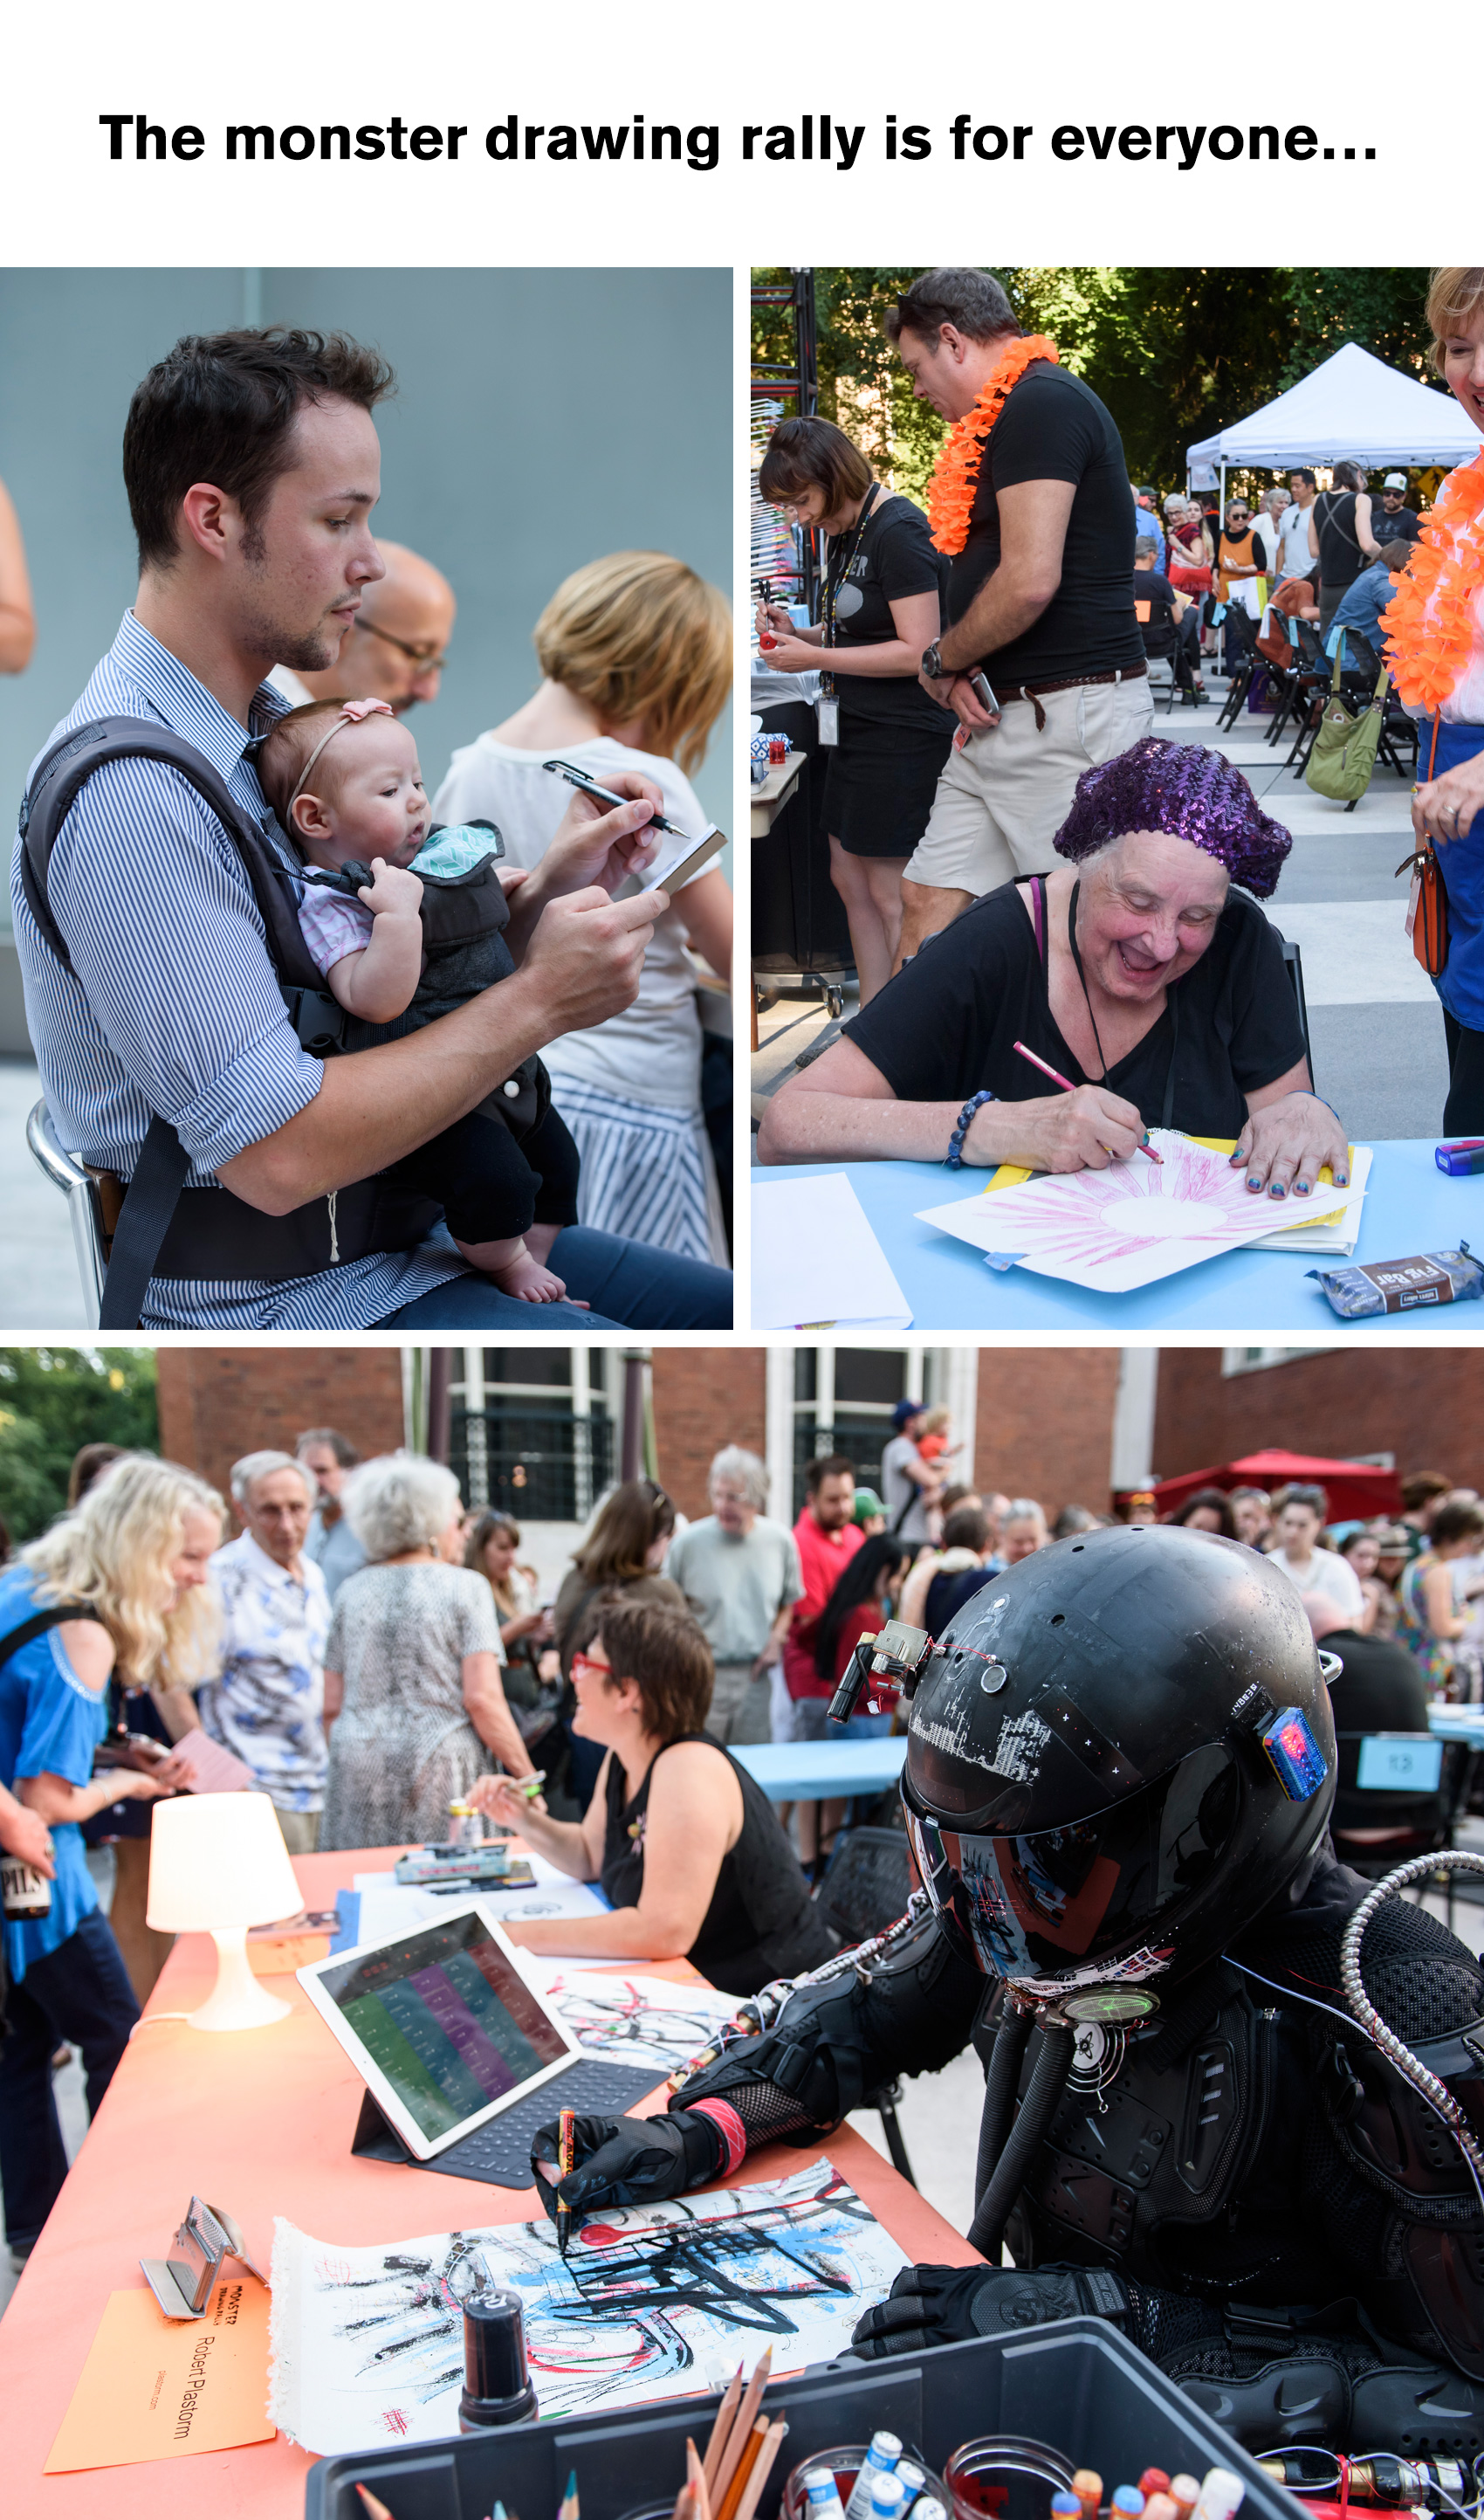 Portland Art Museum's Monster Drawing Rally 2017 - all kinds of people come, young, old, really young, robots.